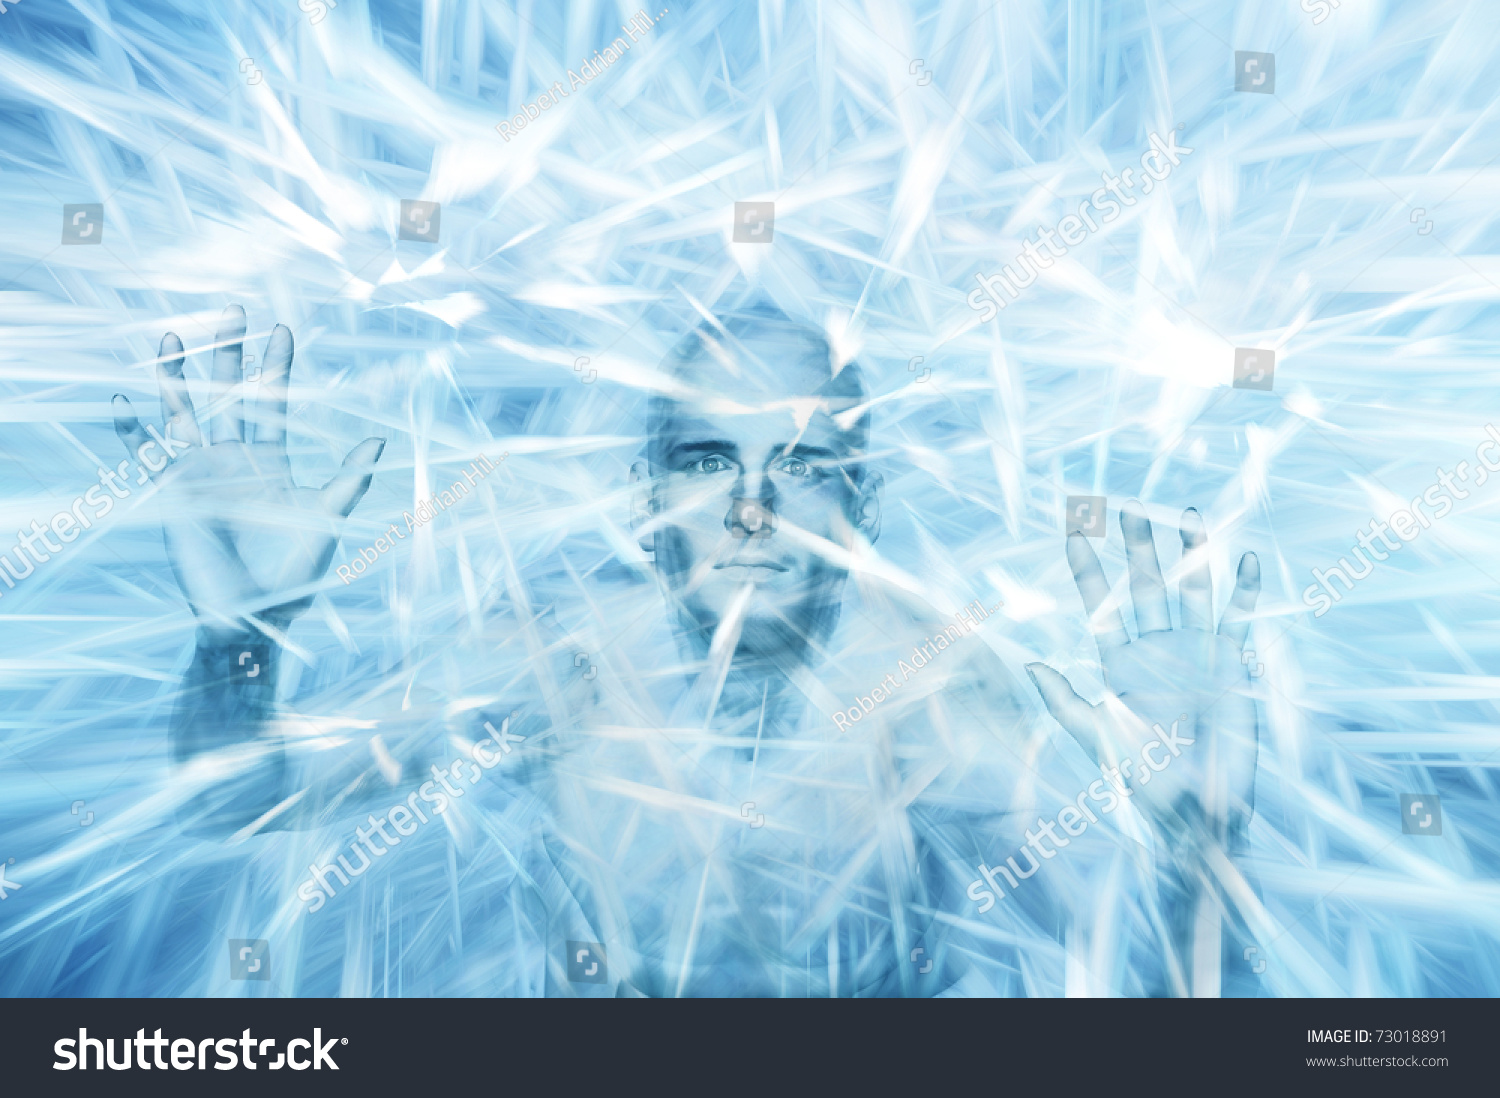 man within block frozen ice eyes stock illustration royalty free